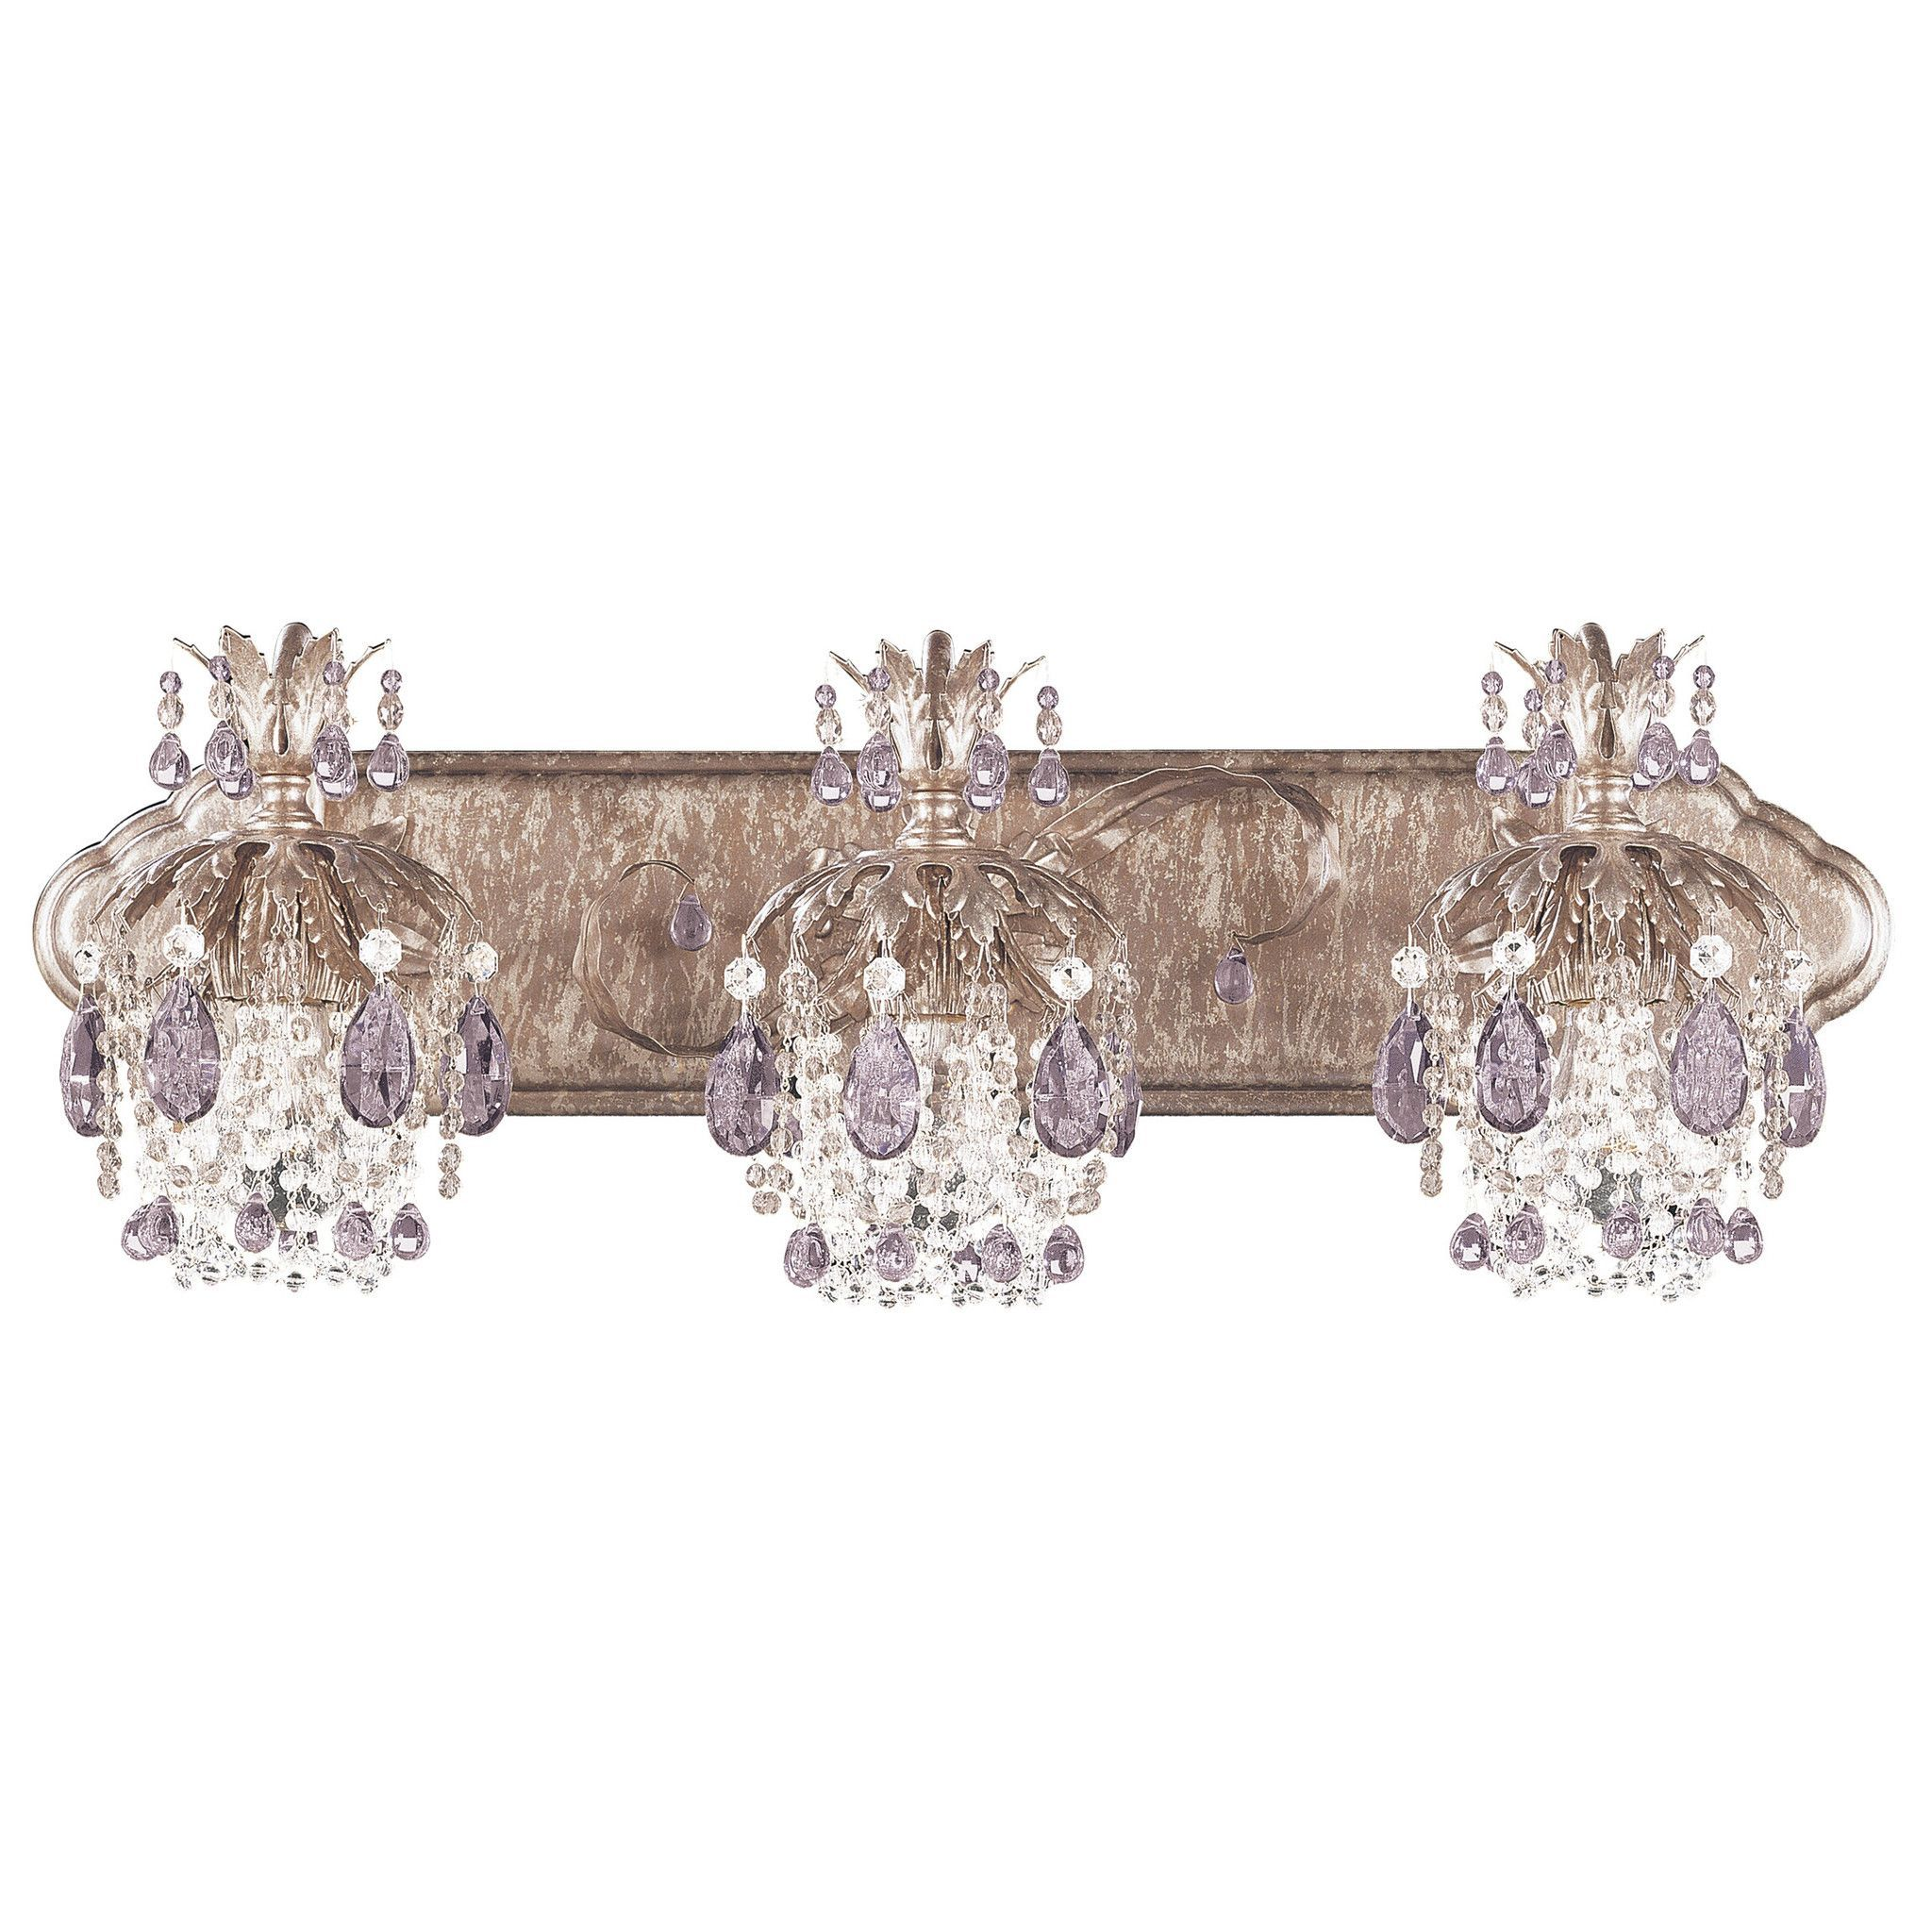 The Schonbek Rondelle 1256 Is A Colored Crystal Bath Vanity Light Available In Ancient Bronze Gold Antique Pewter Silver Umber